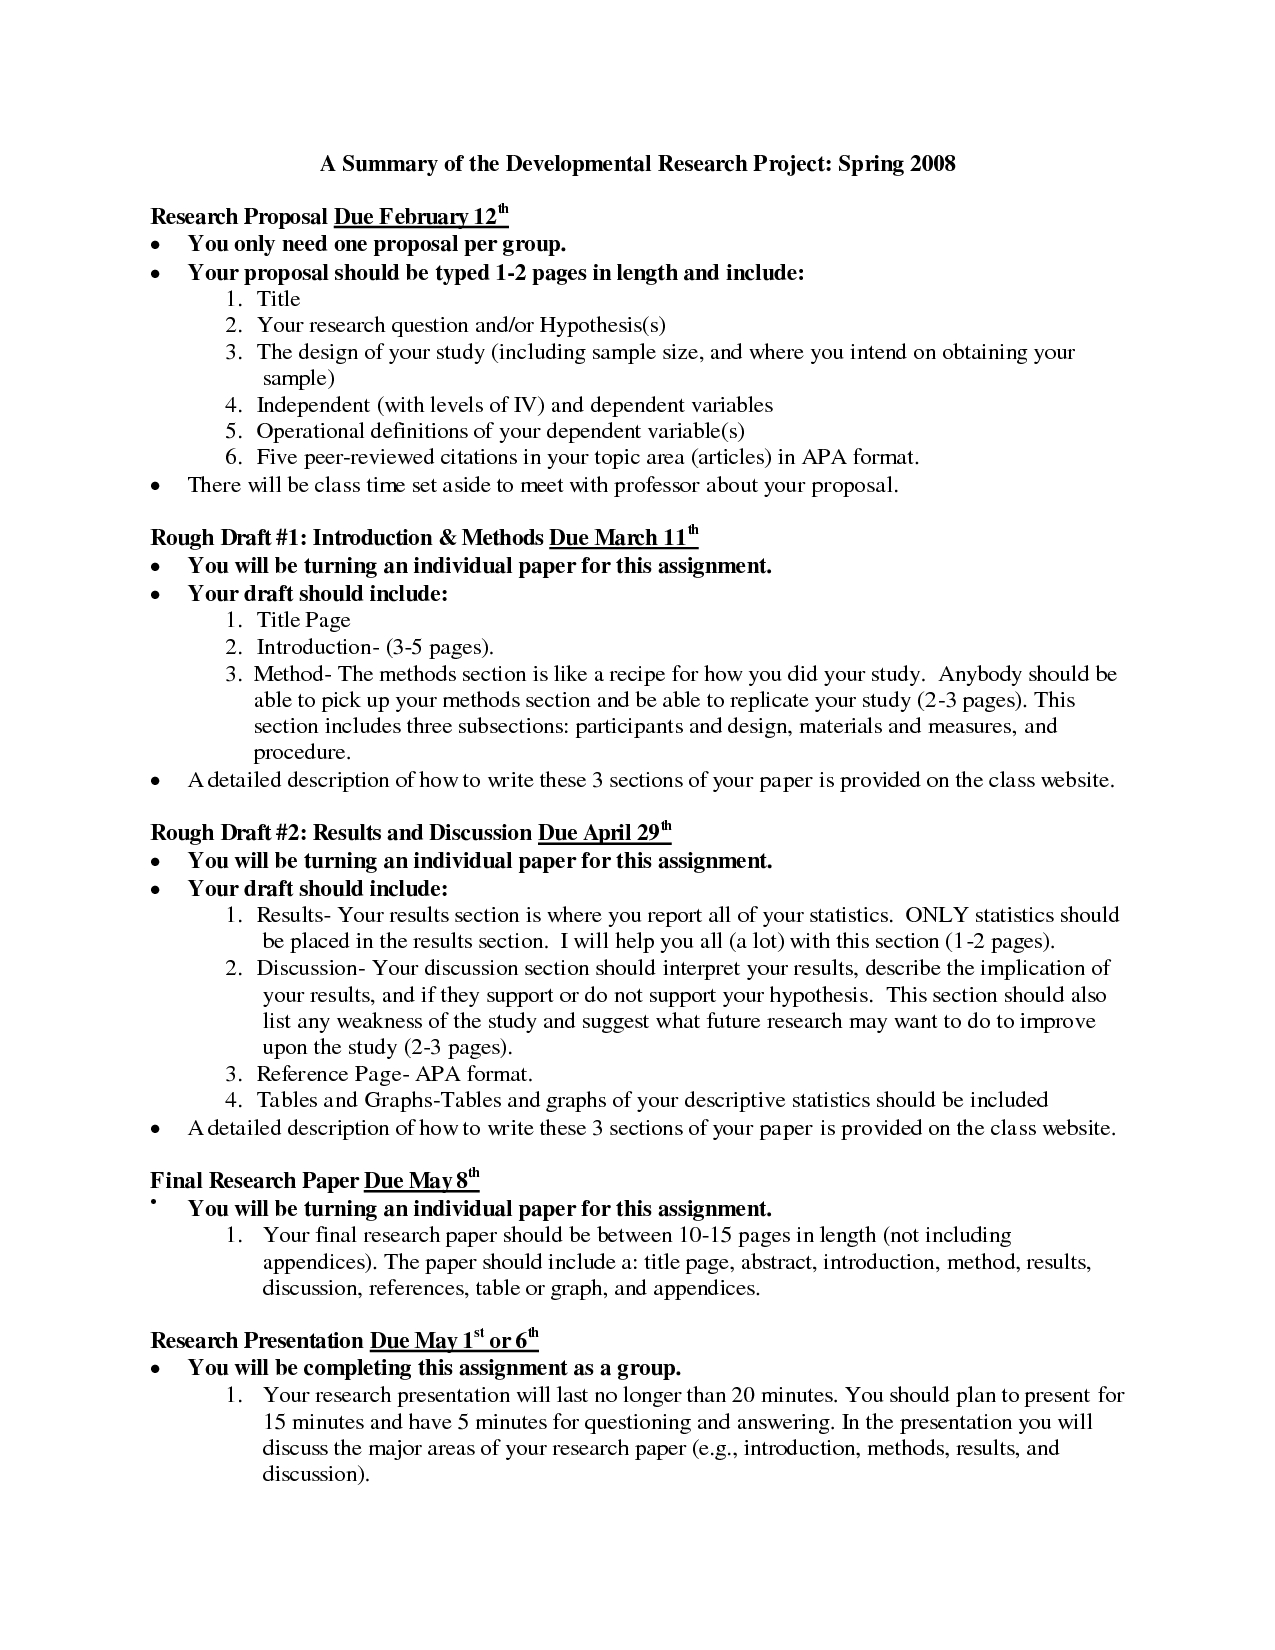 009 Research Paper Psychology Undergraduate Resume Unique Sample Of Good Shocking Topics About Music Us History 20th Century For College English Class Full